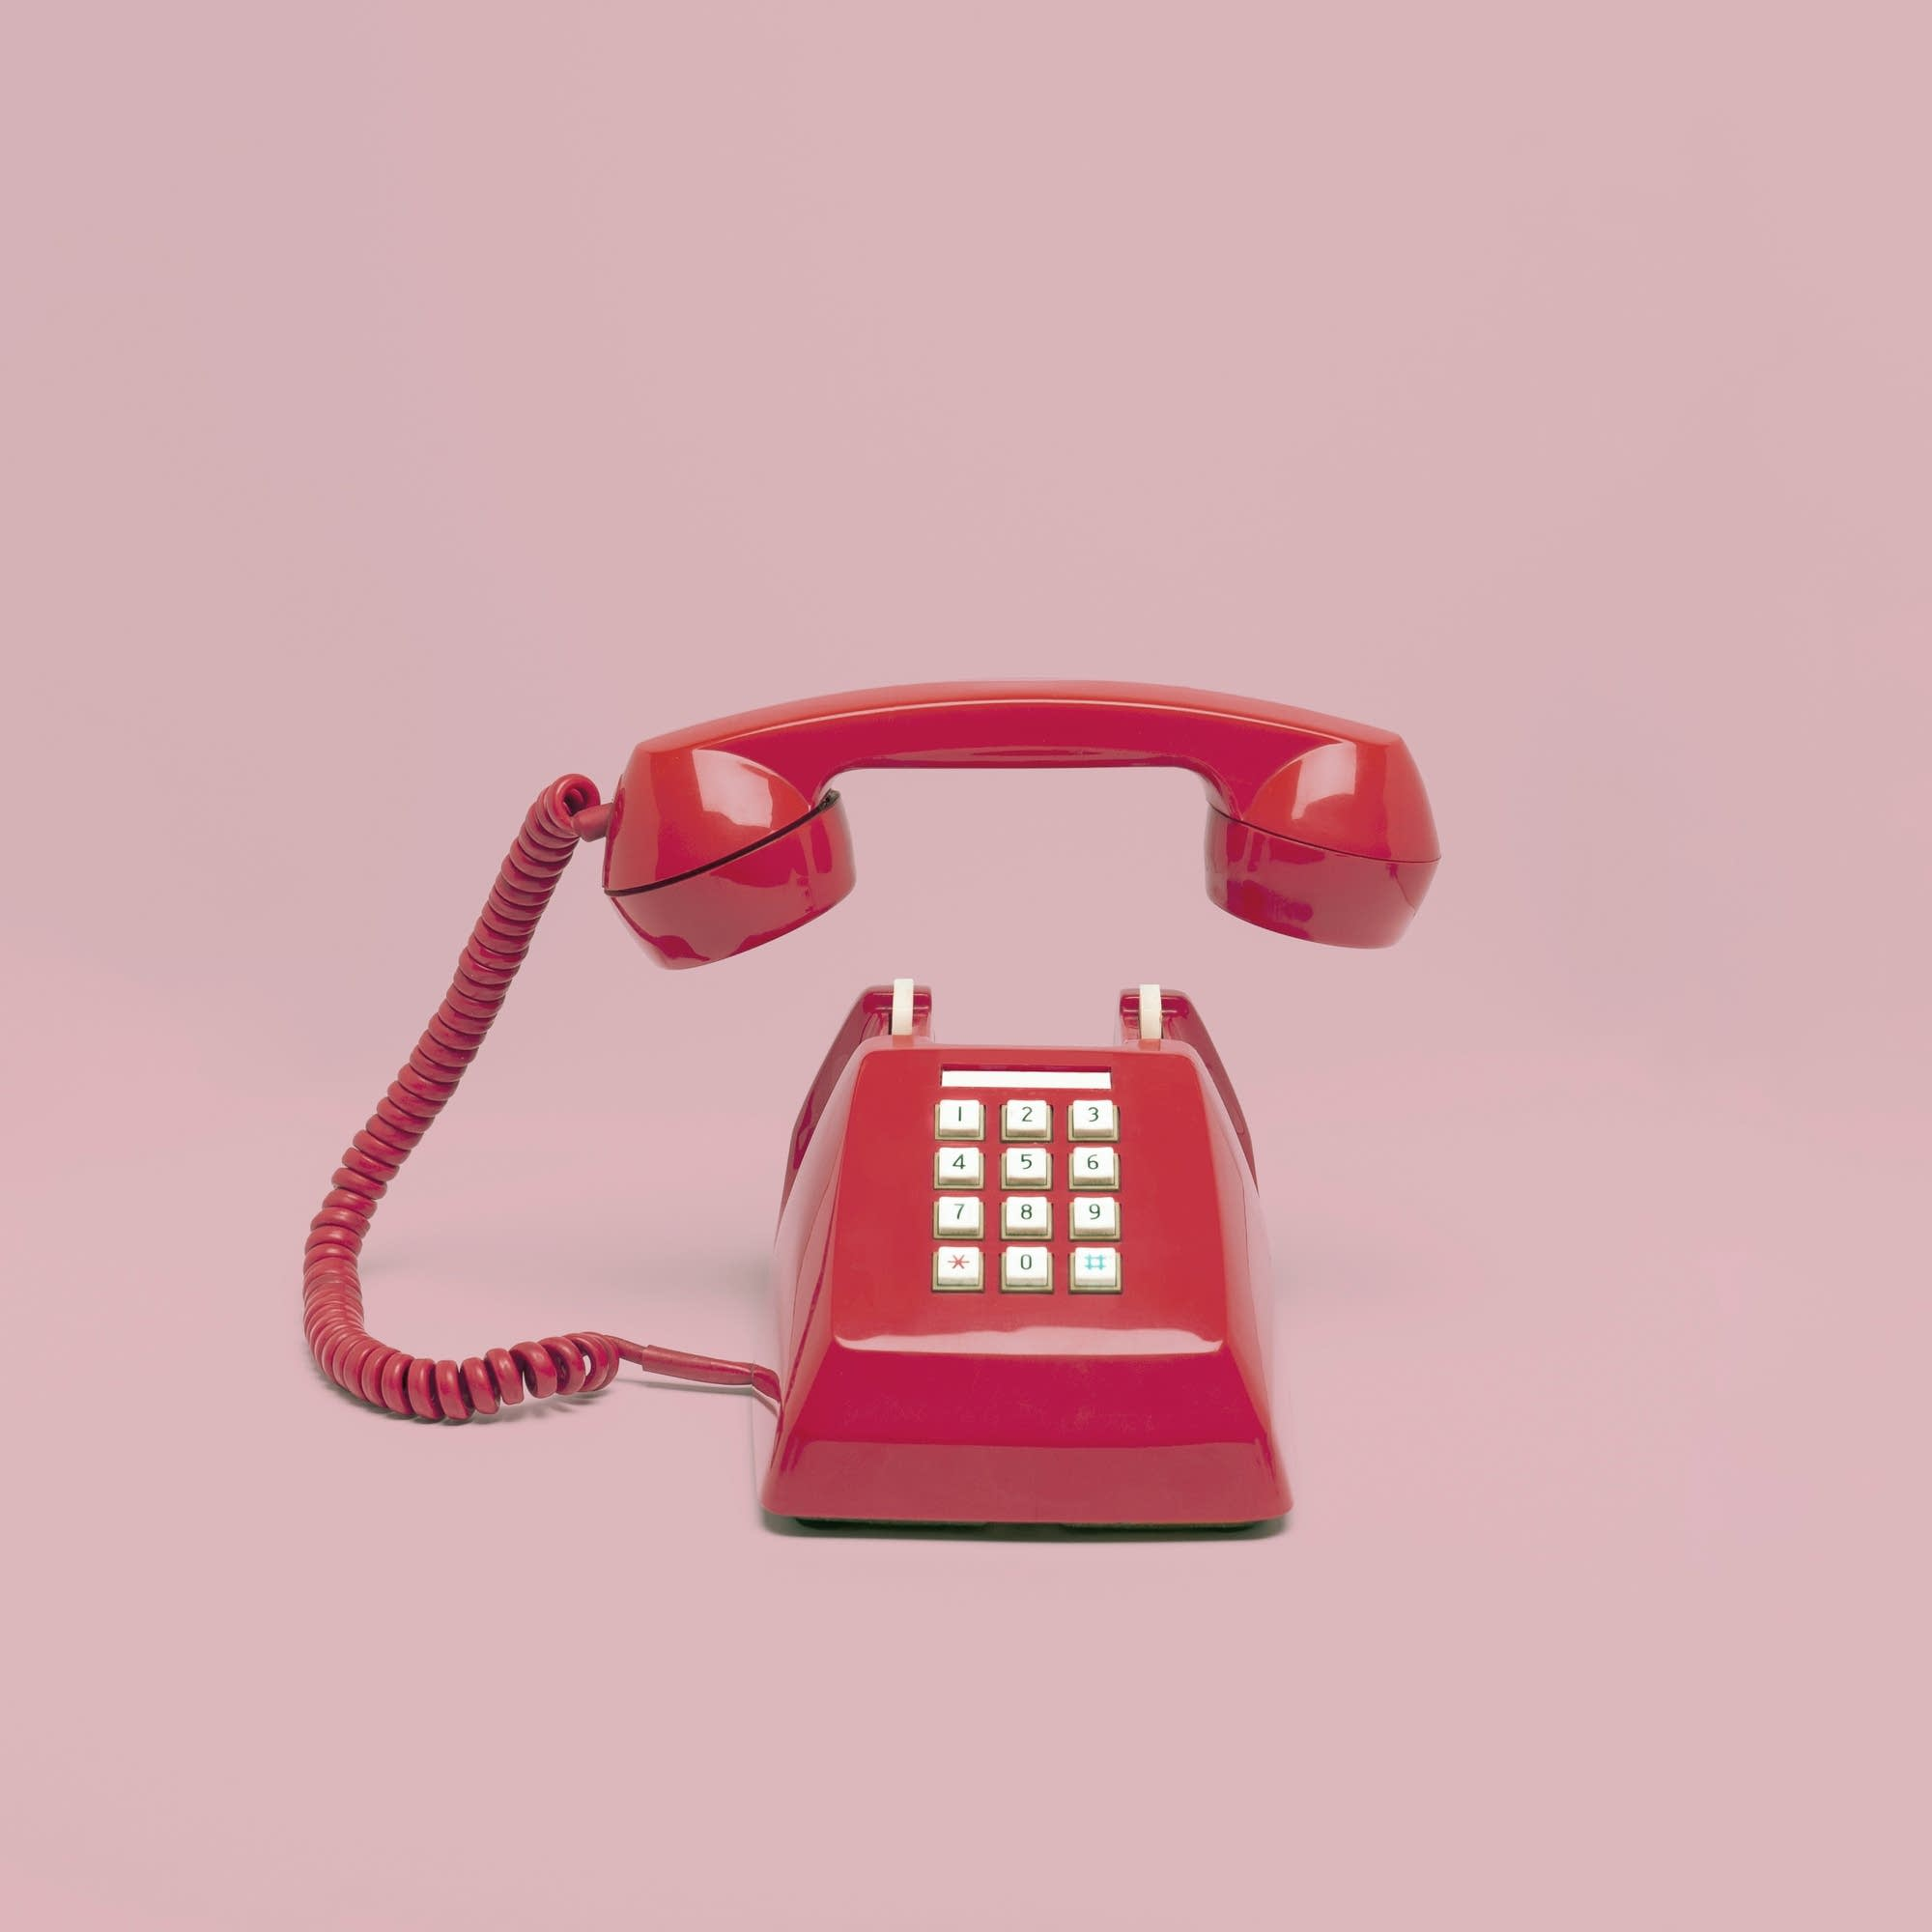 A red landline telephone